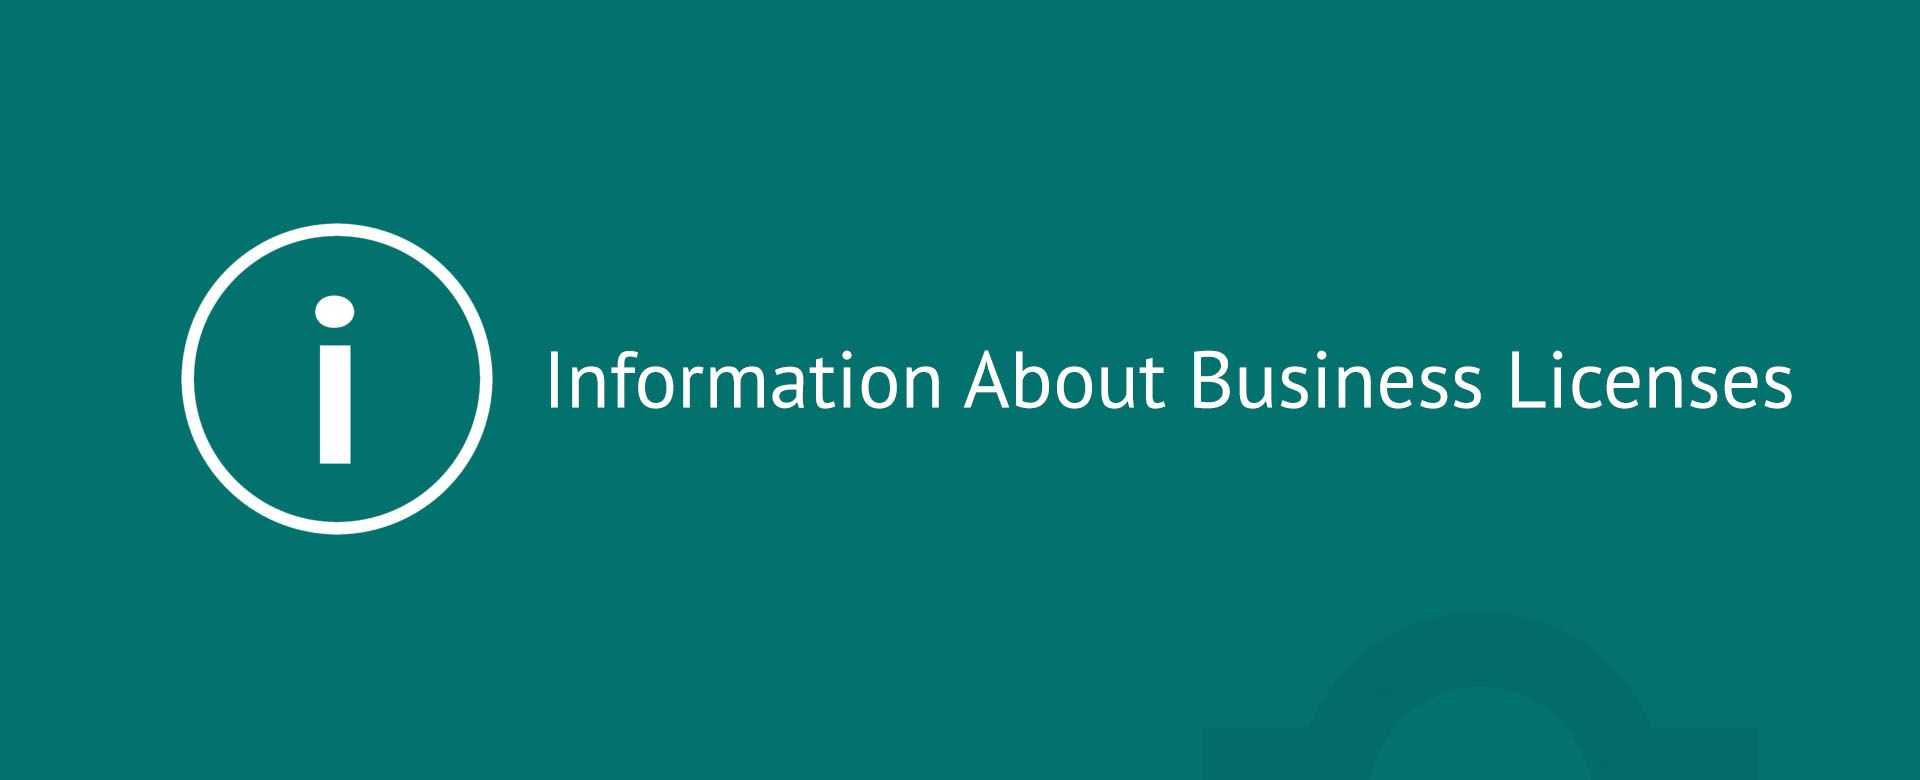 Information About Business Licenses